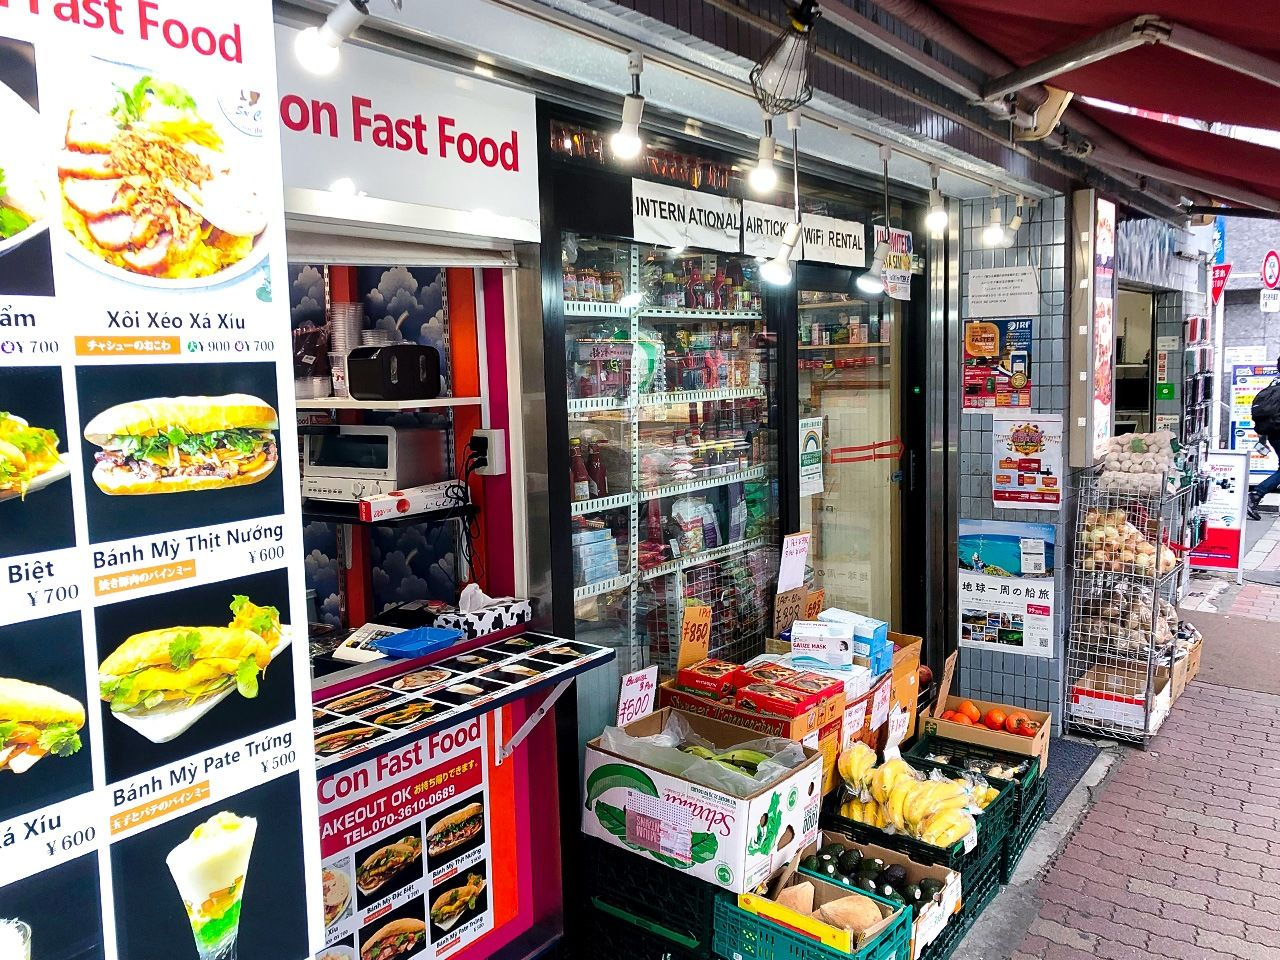 A halal market and a stand selling sandwiches made with banh mi, a type of Vietnamese baguette, share store fronts.